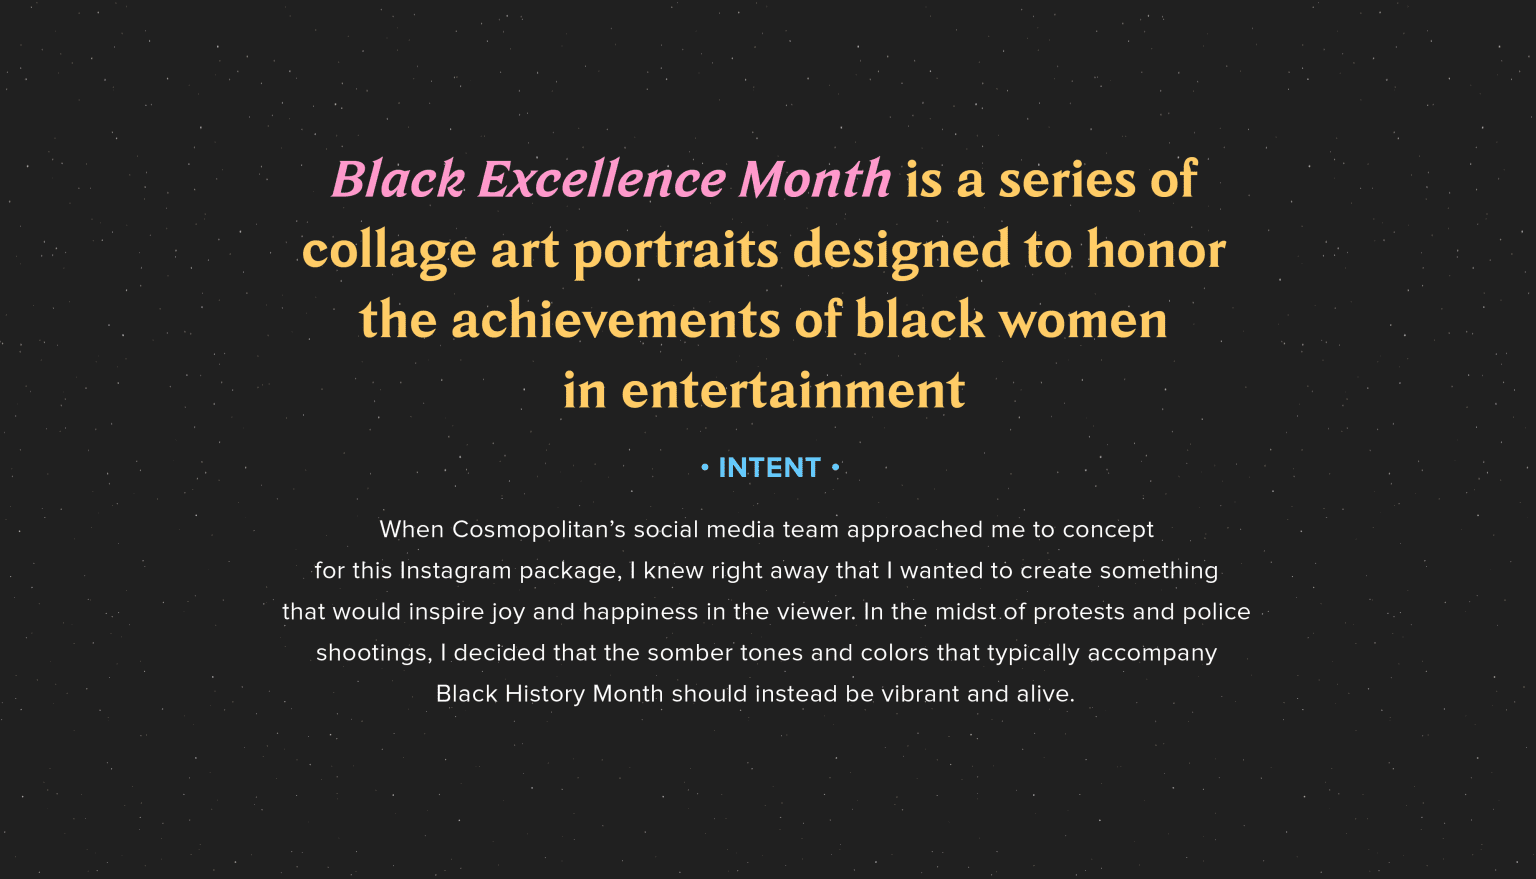 Black Excellence Month